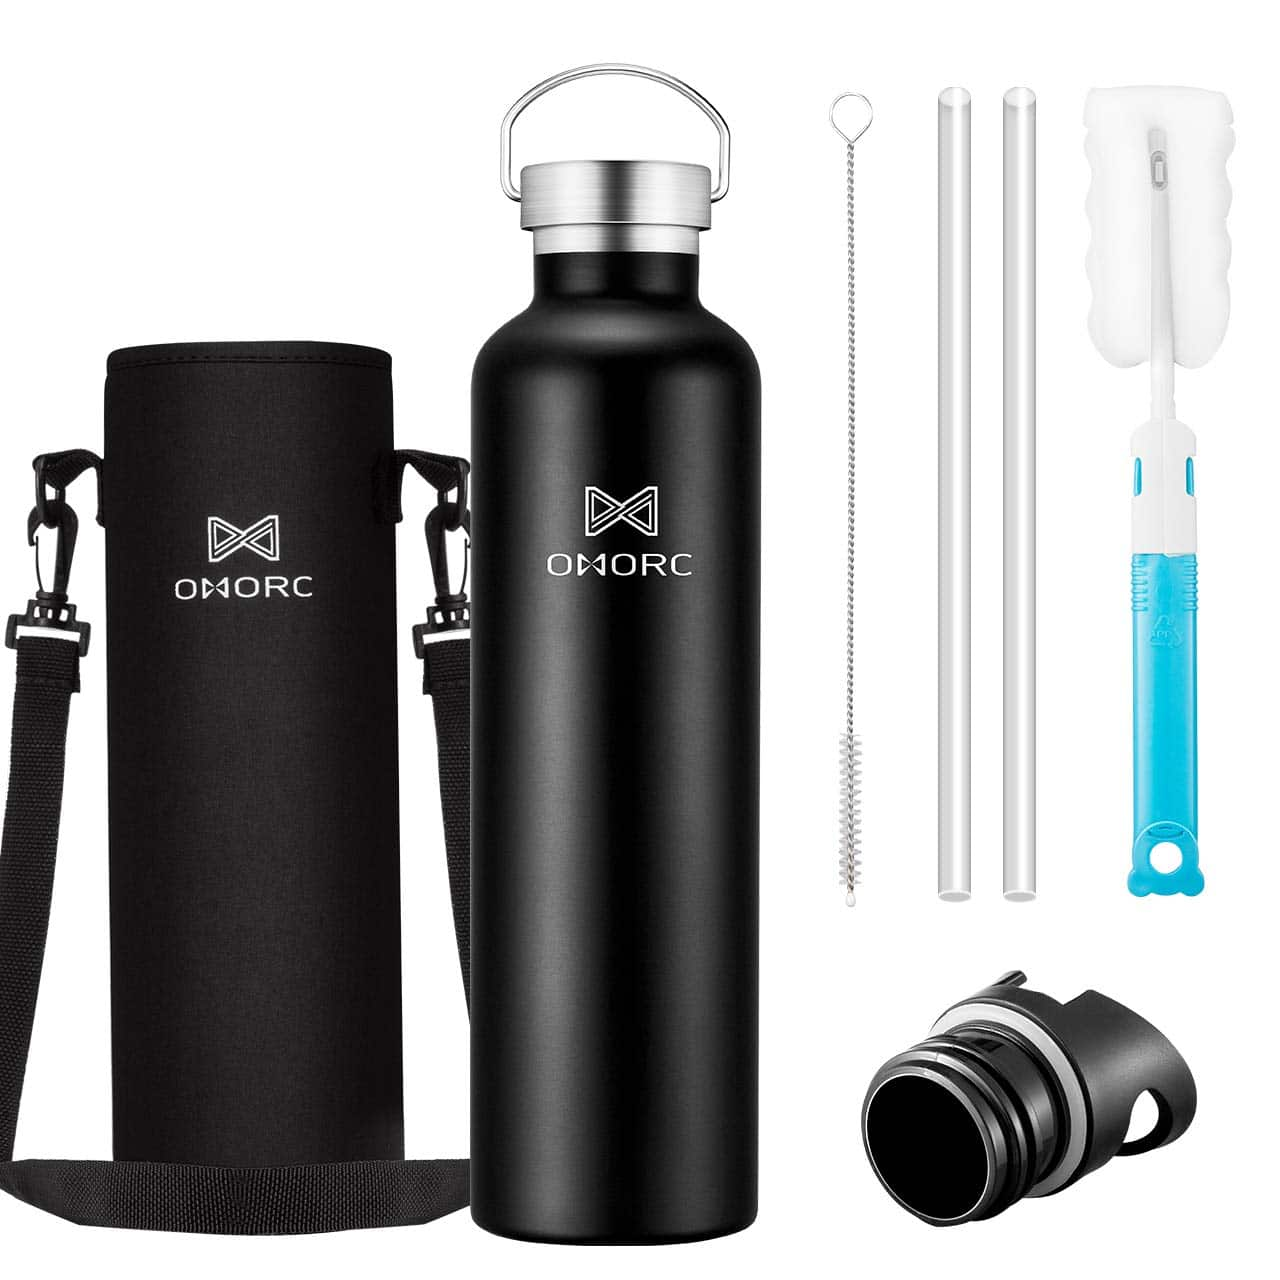 34oz Double Wall Vacuum Insulated Stainless Steel Water Bottle for $13.19 +  FS w/ Prime